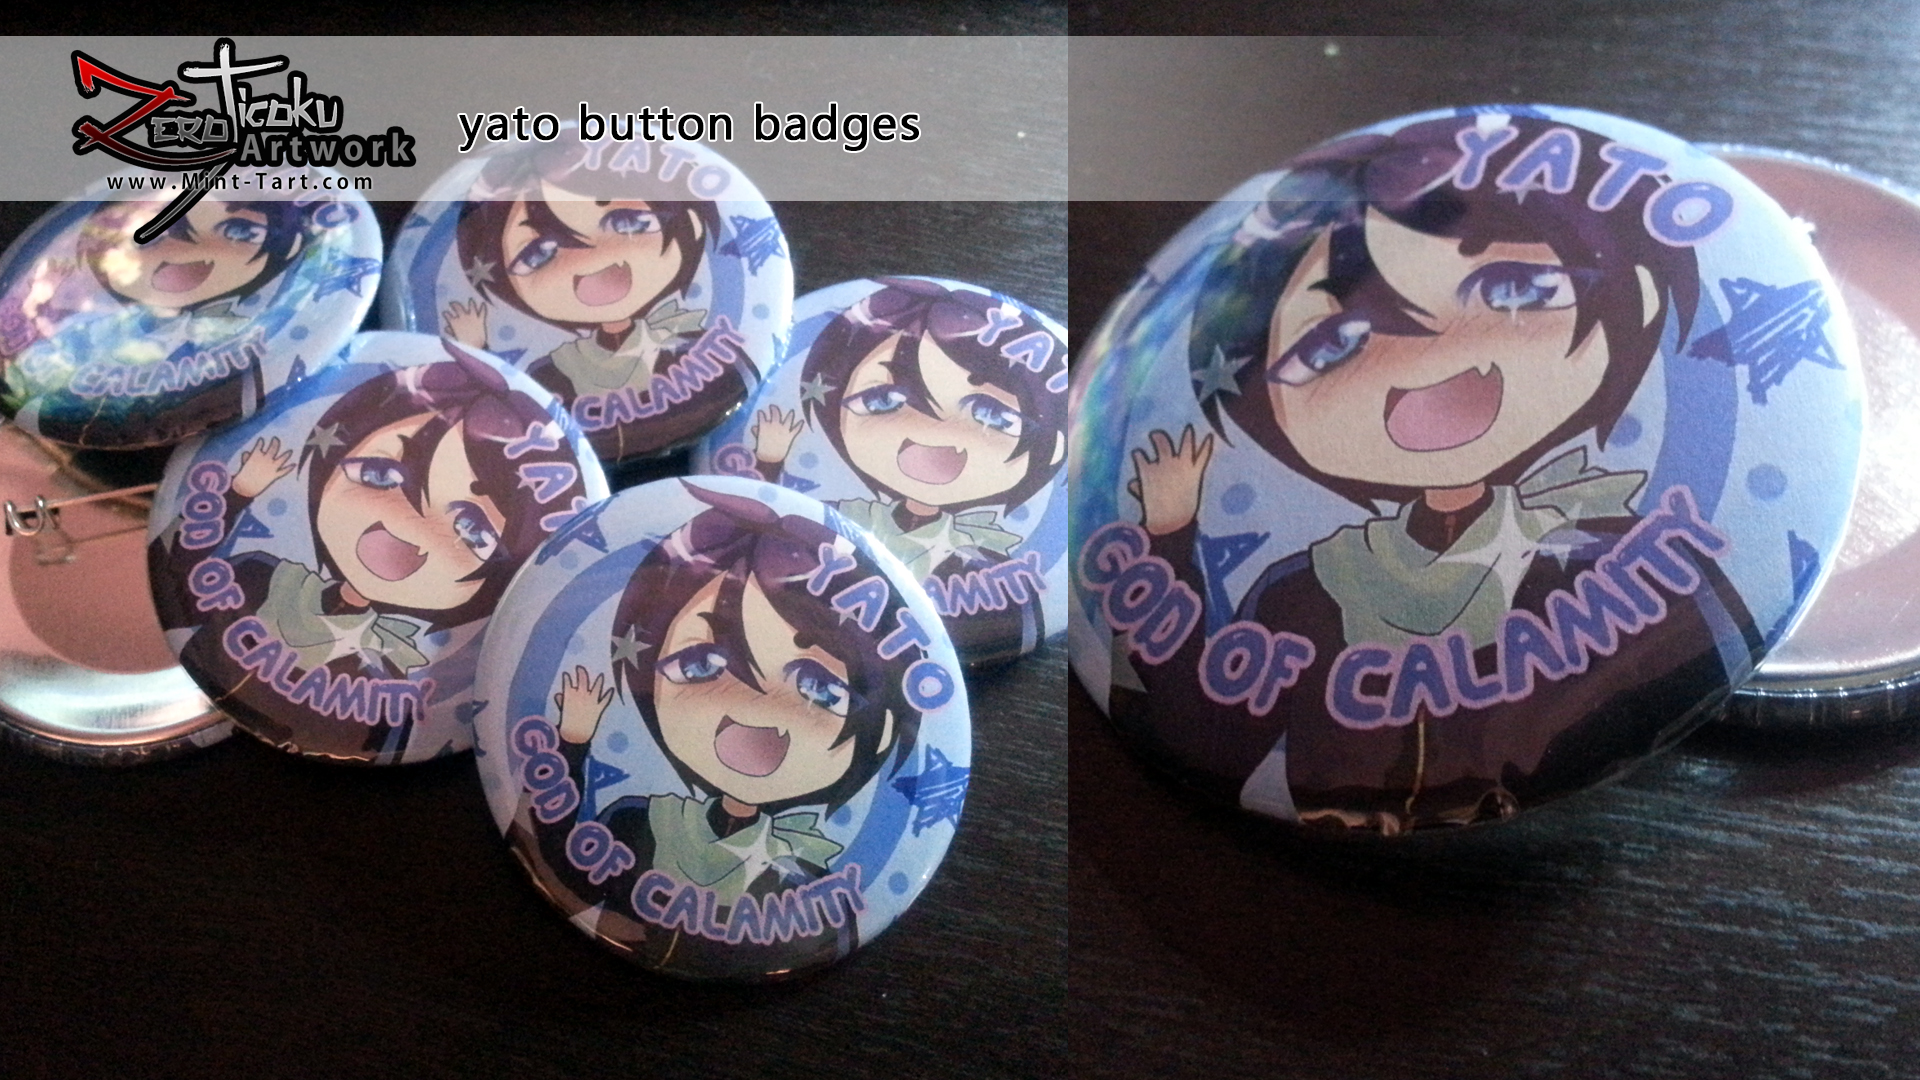 yatobuttonbadgesfinished